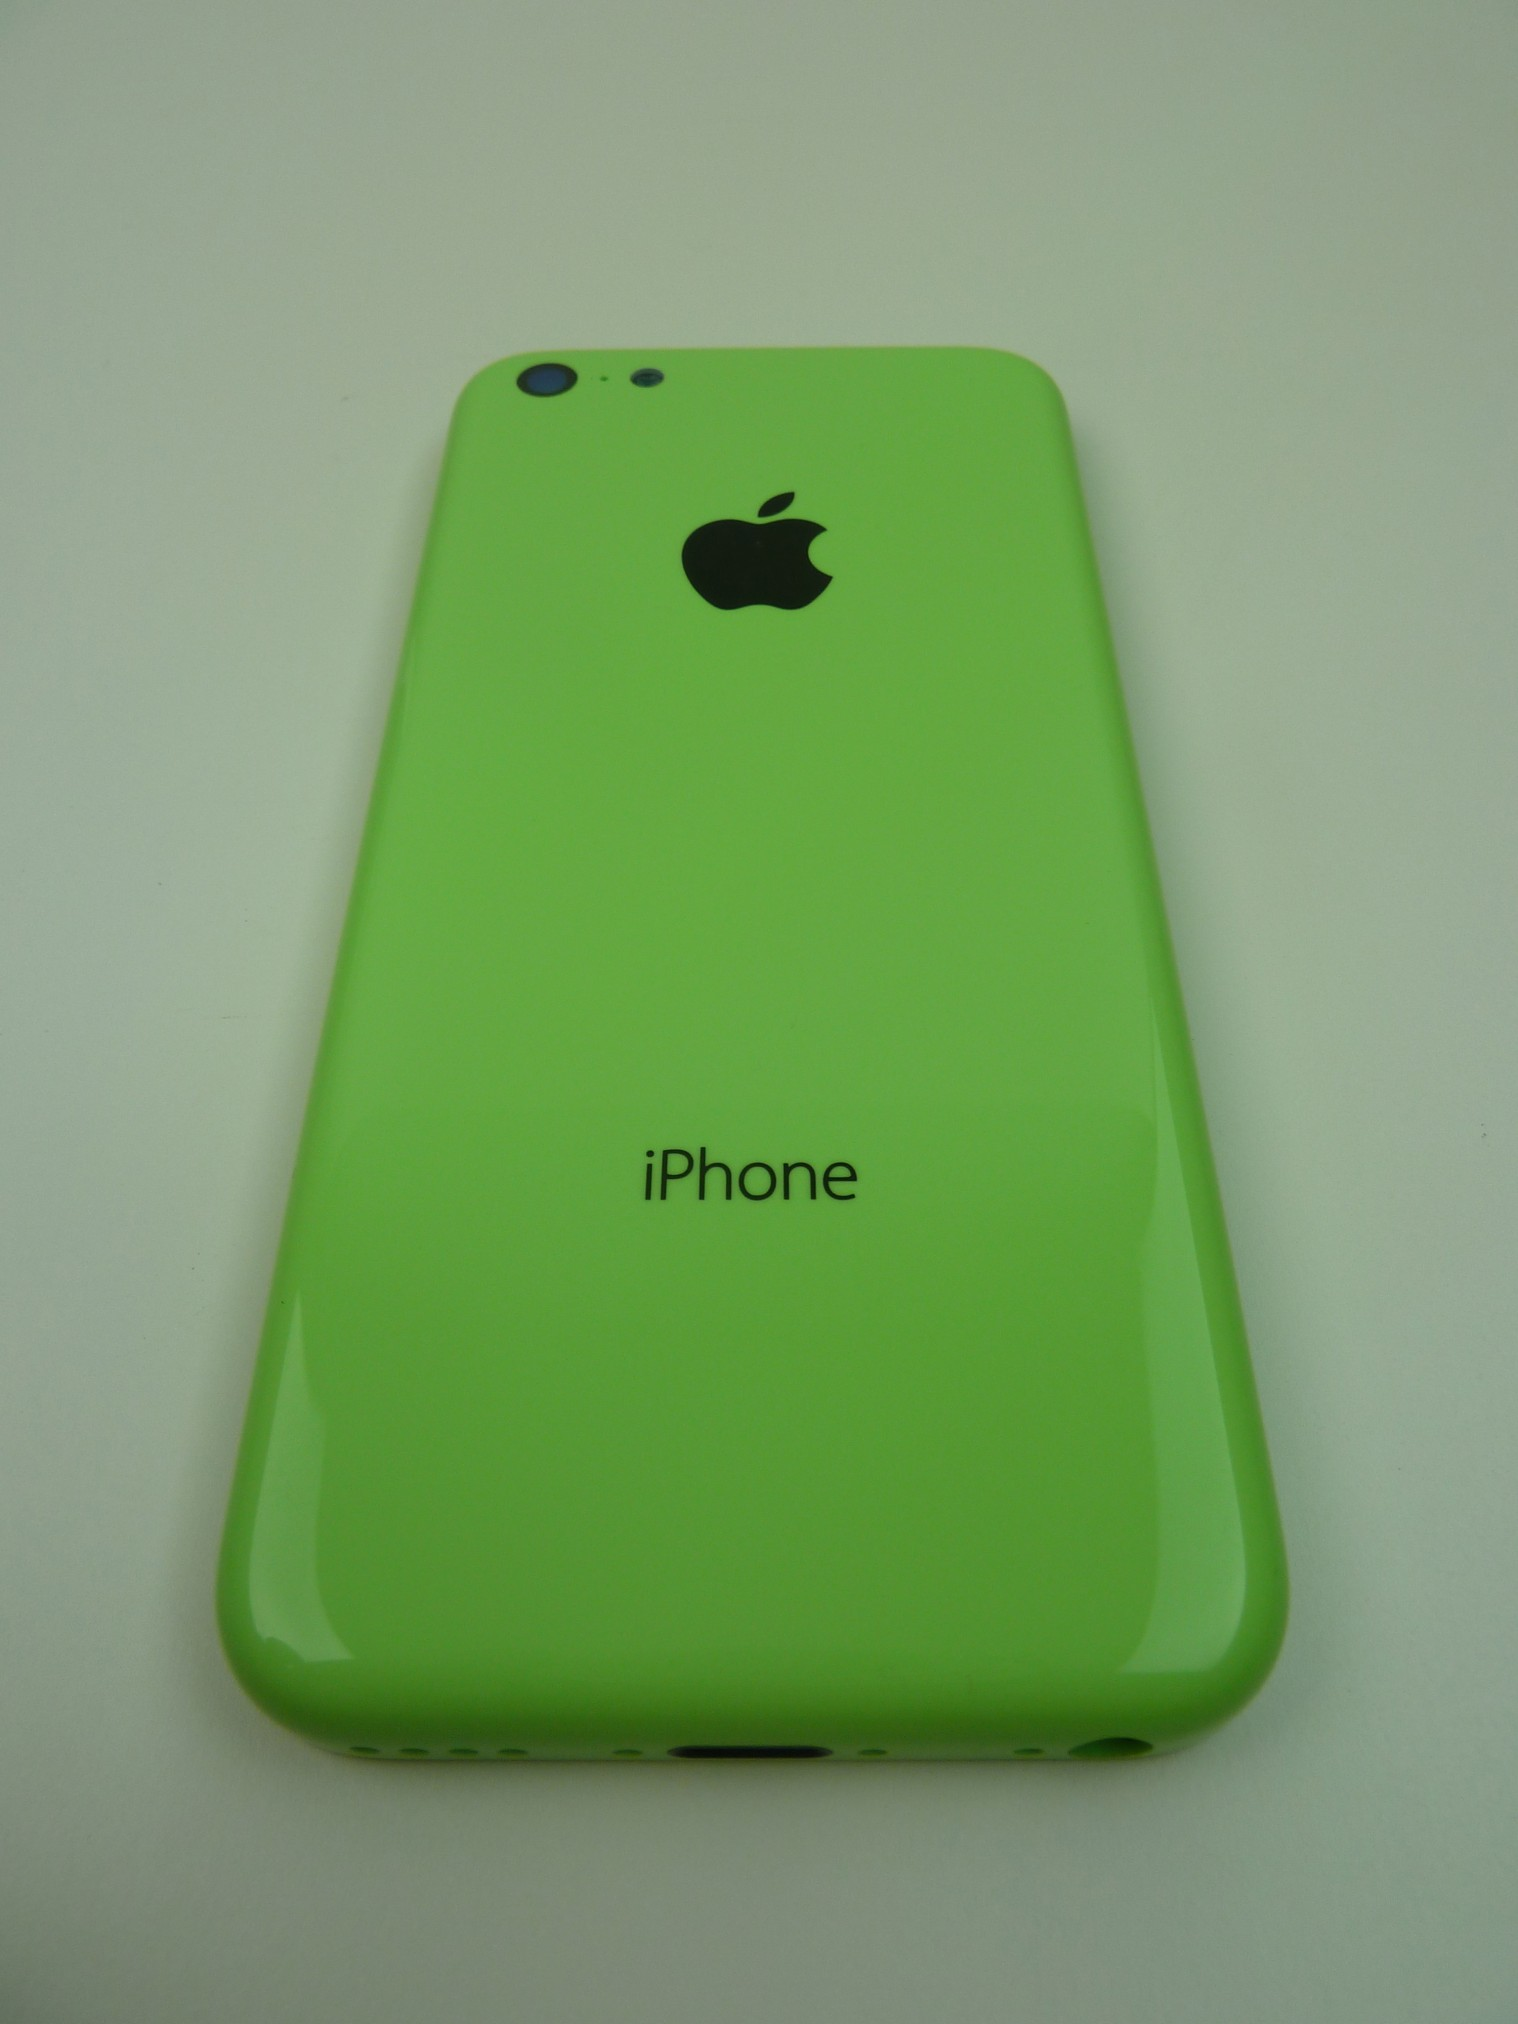 Leaked Images of Green iPhone 5C and Volume Buttons